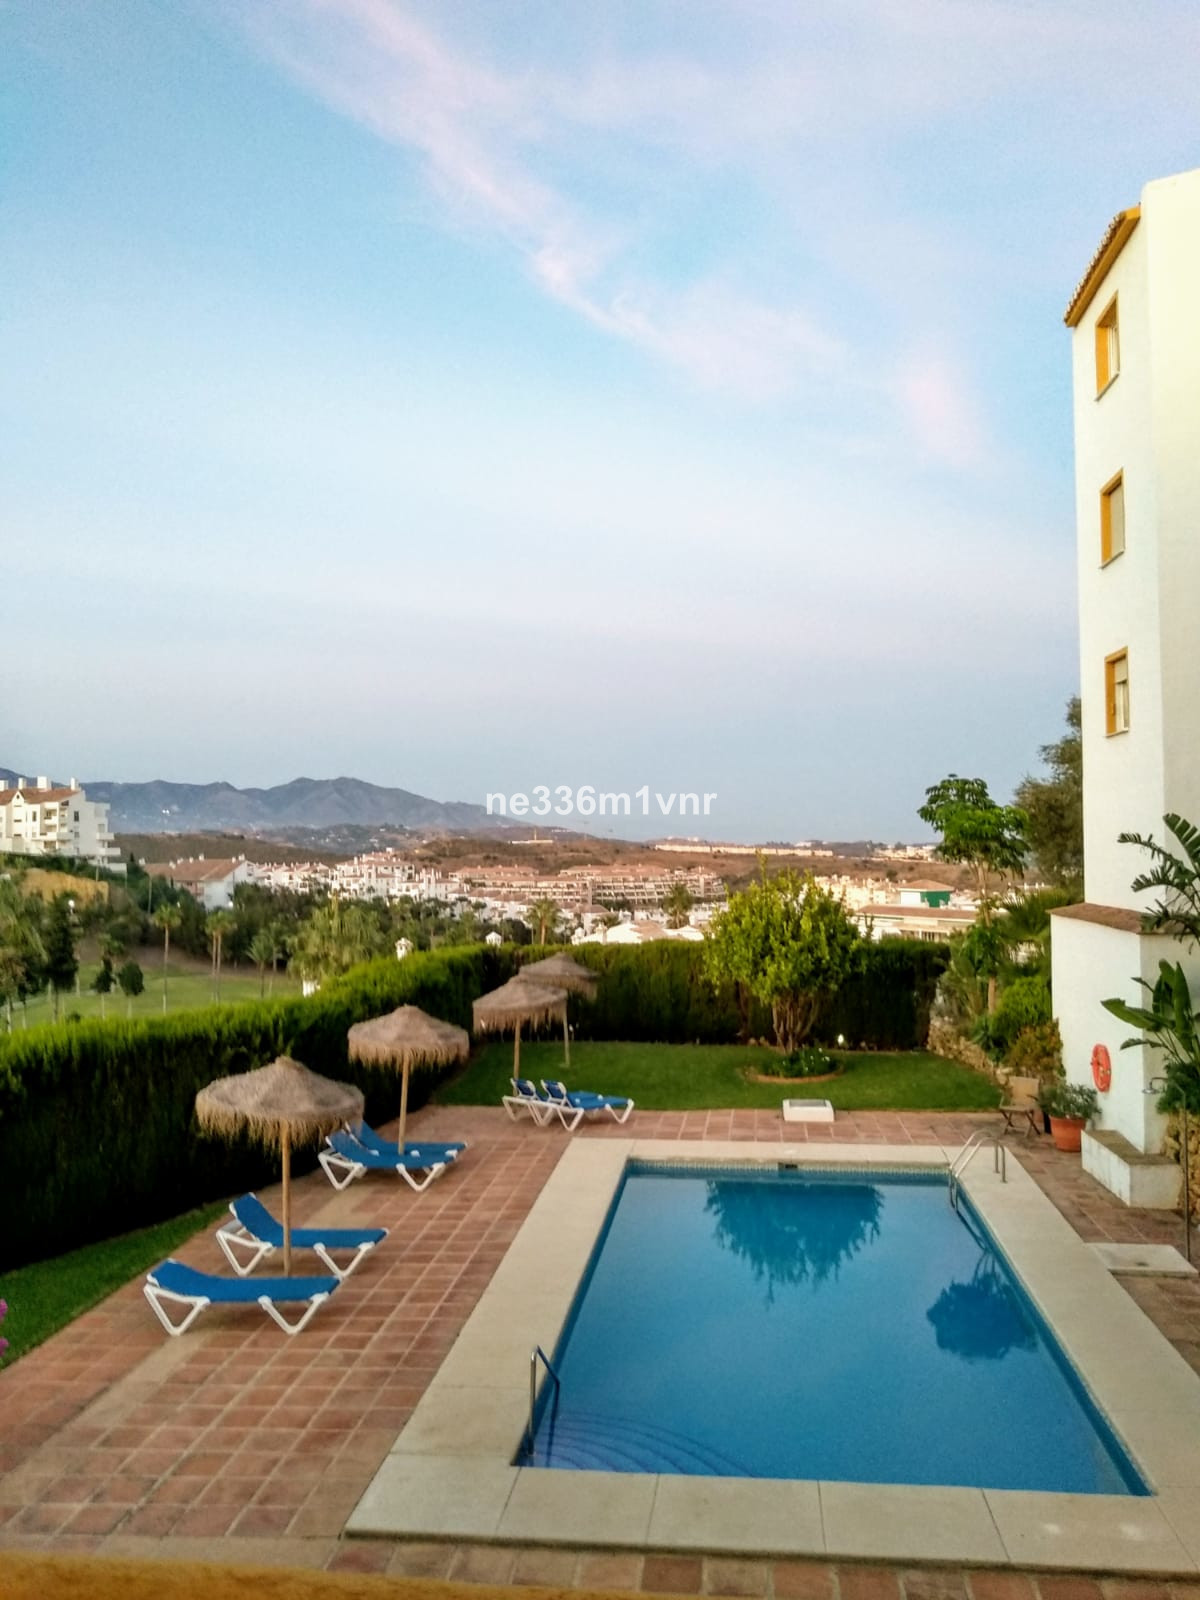 ! SPLENDID FLAT IN URBANIZATION WITH POOL NEAR THE BEACH!  The property consists of 100 m2 with a te,Spain